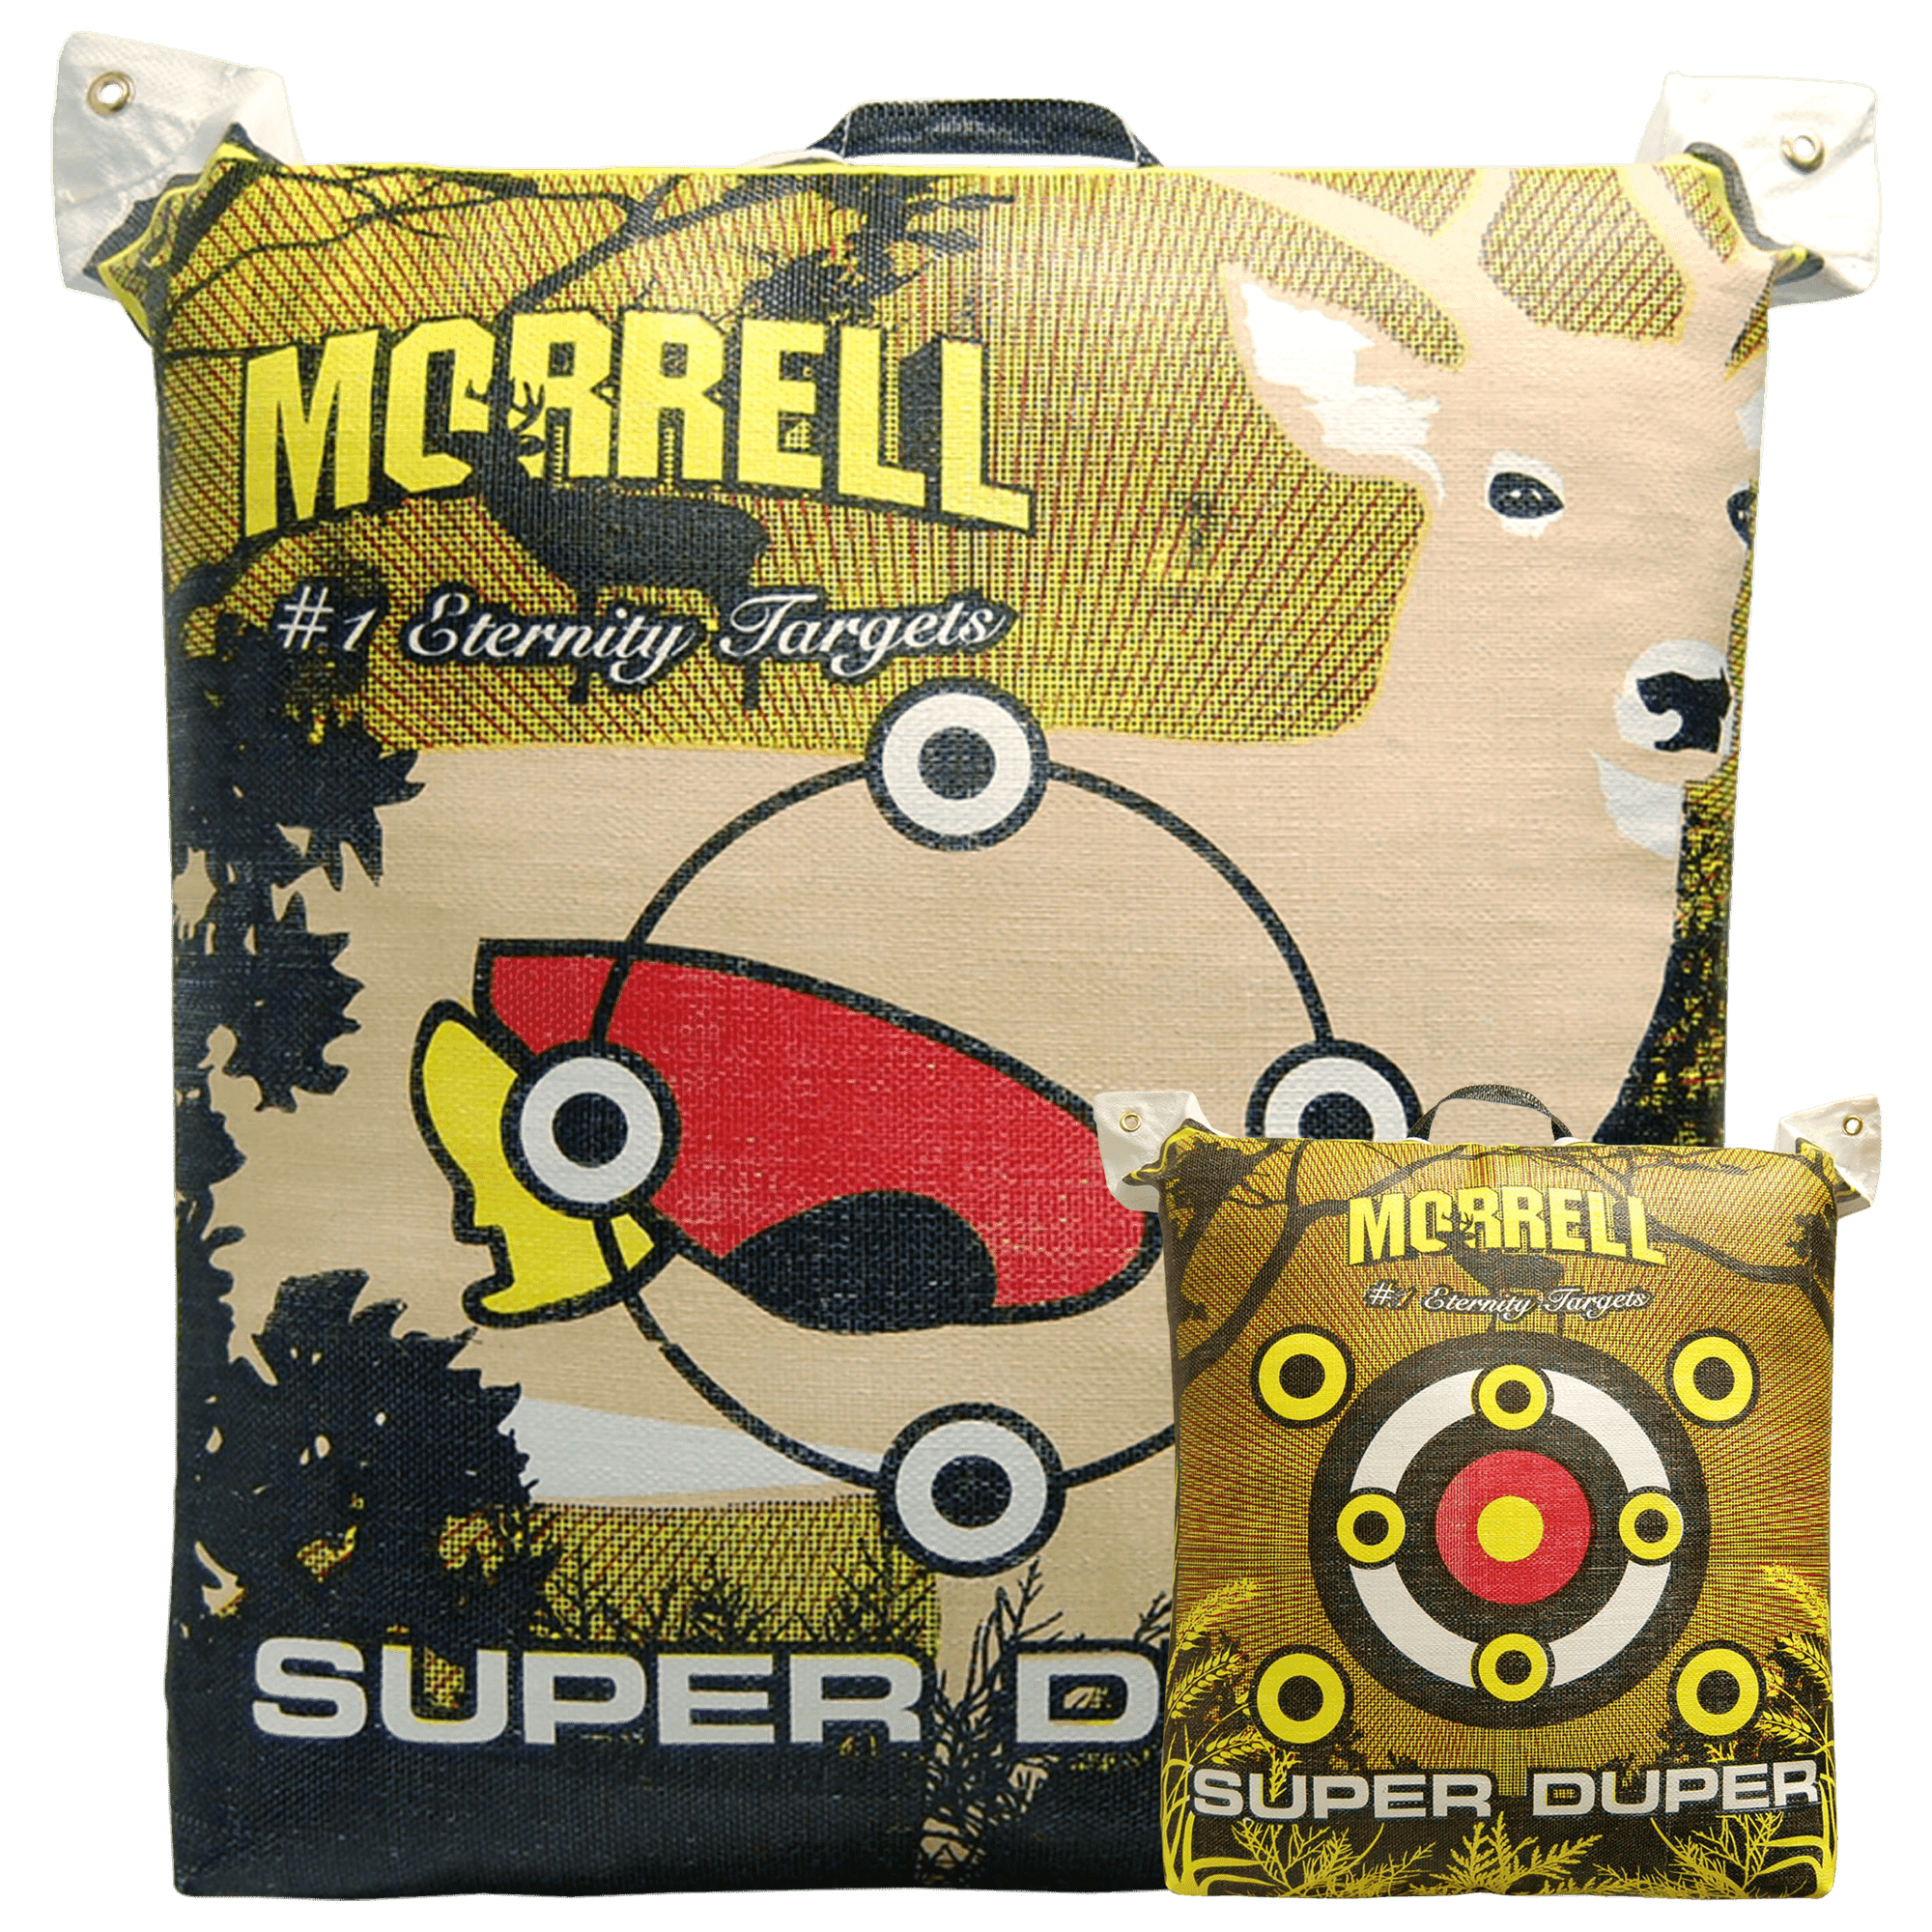 Morrell Targets Super Duper Archery Target Replacement Cover by Morrell Mfg., Inc.